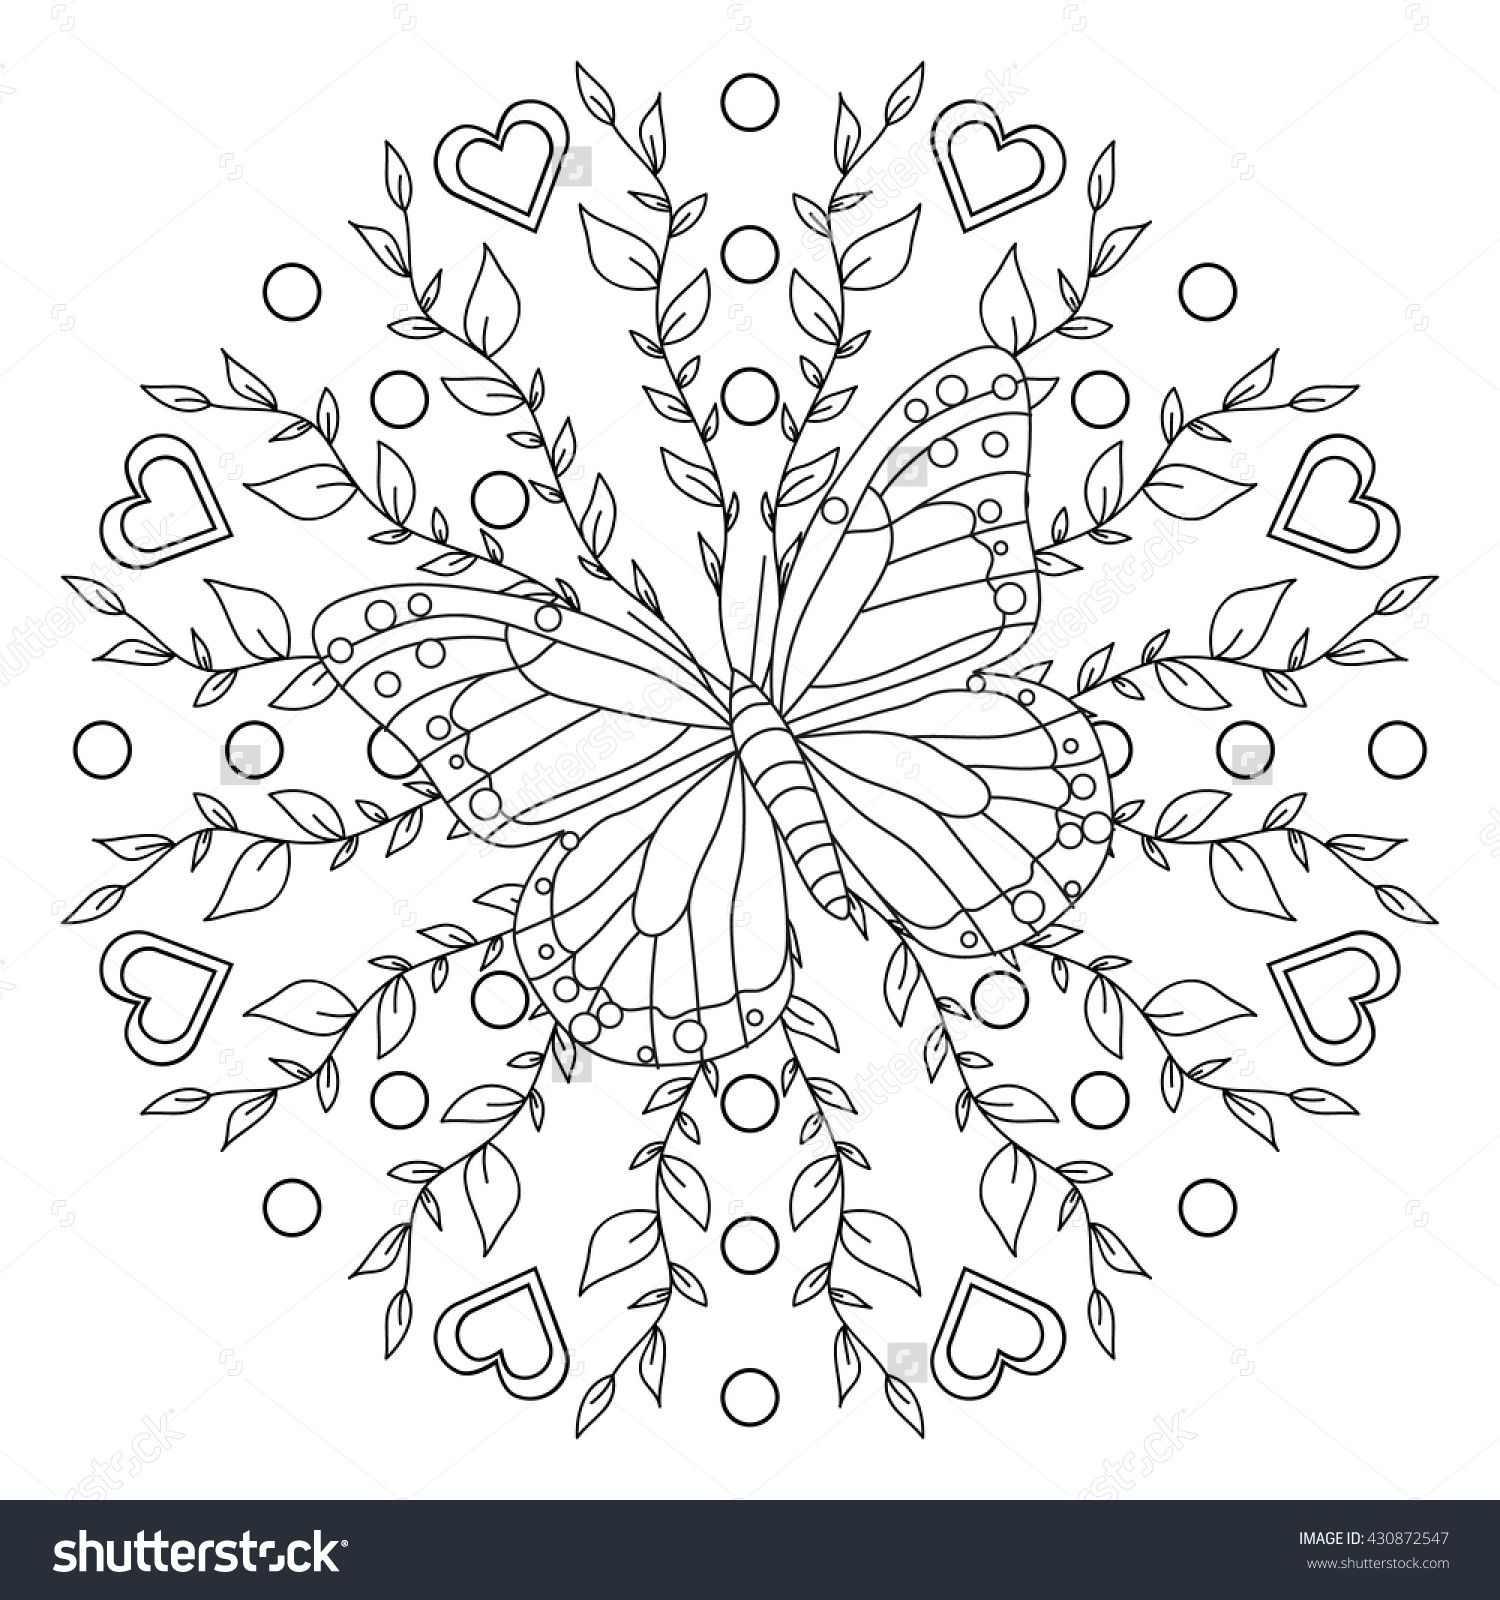 Butterfly+Mandala+Coloring+Pages | Coloring Page - Butterfly Mandala ...